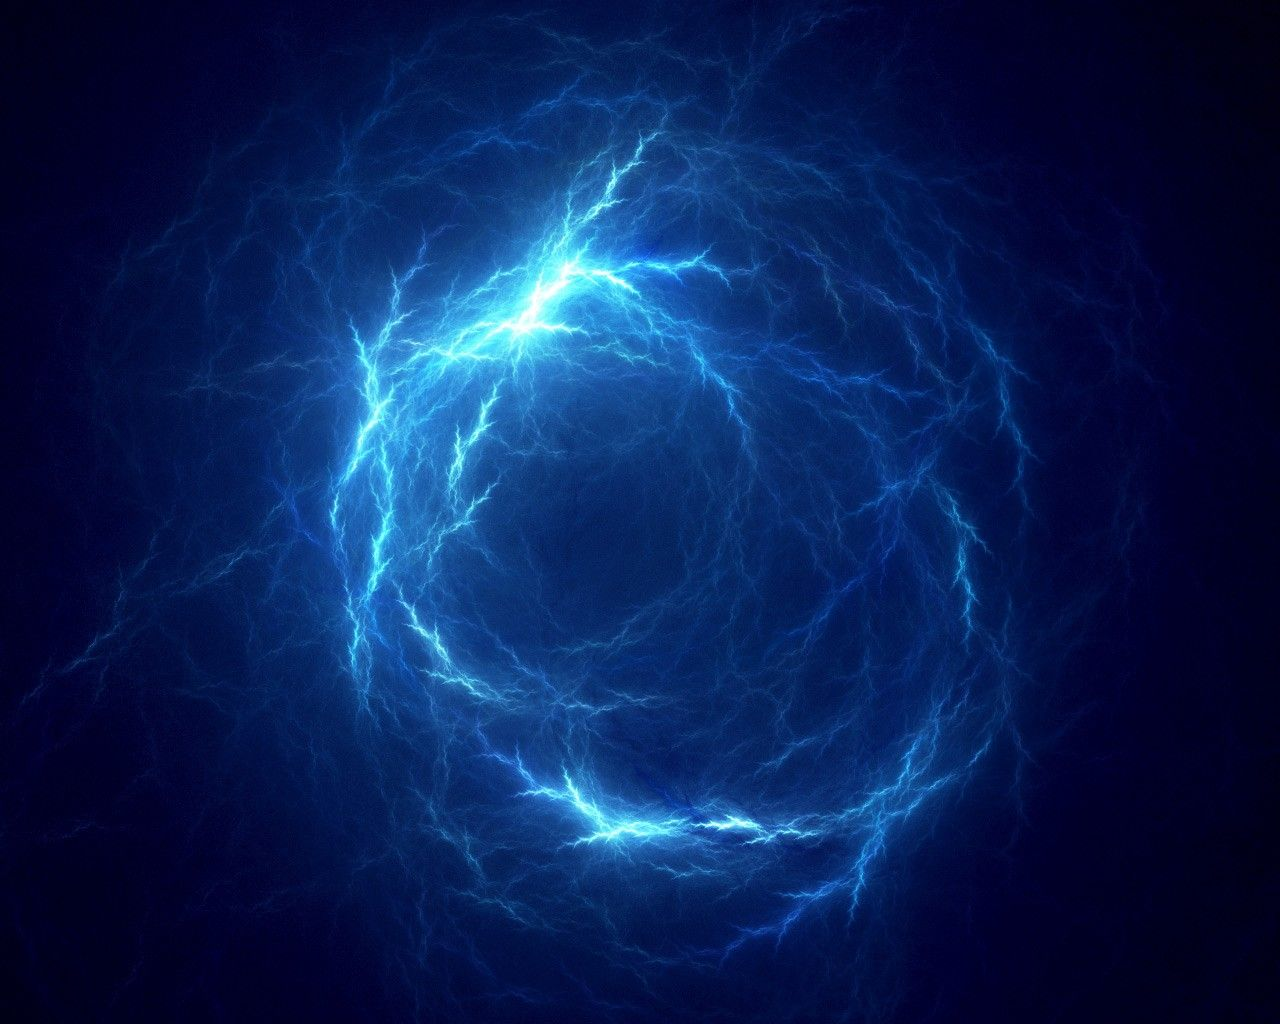 1280x1024 BLUE storm Thunders Storm wallpaper | Simply Amazing or Wonderfully ...